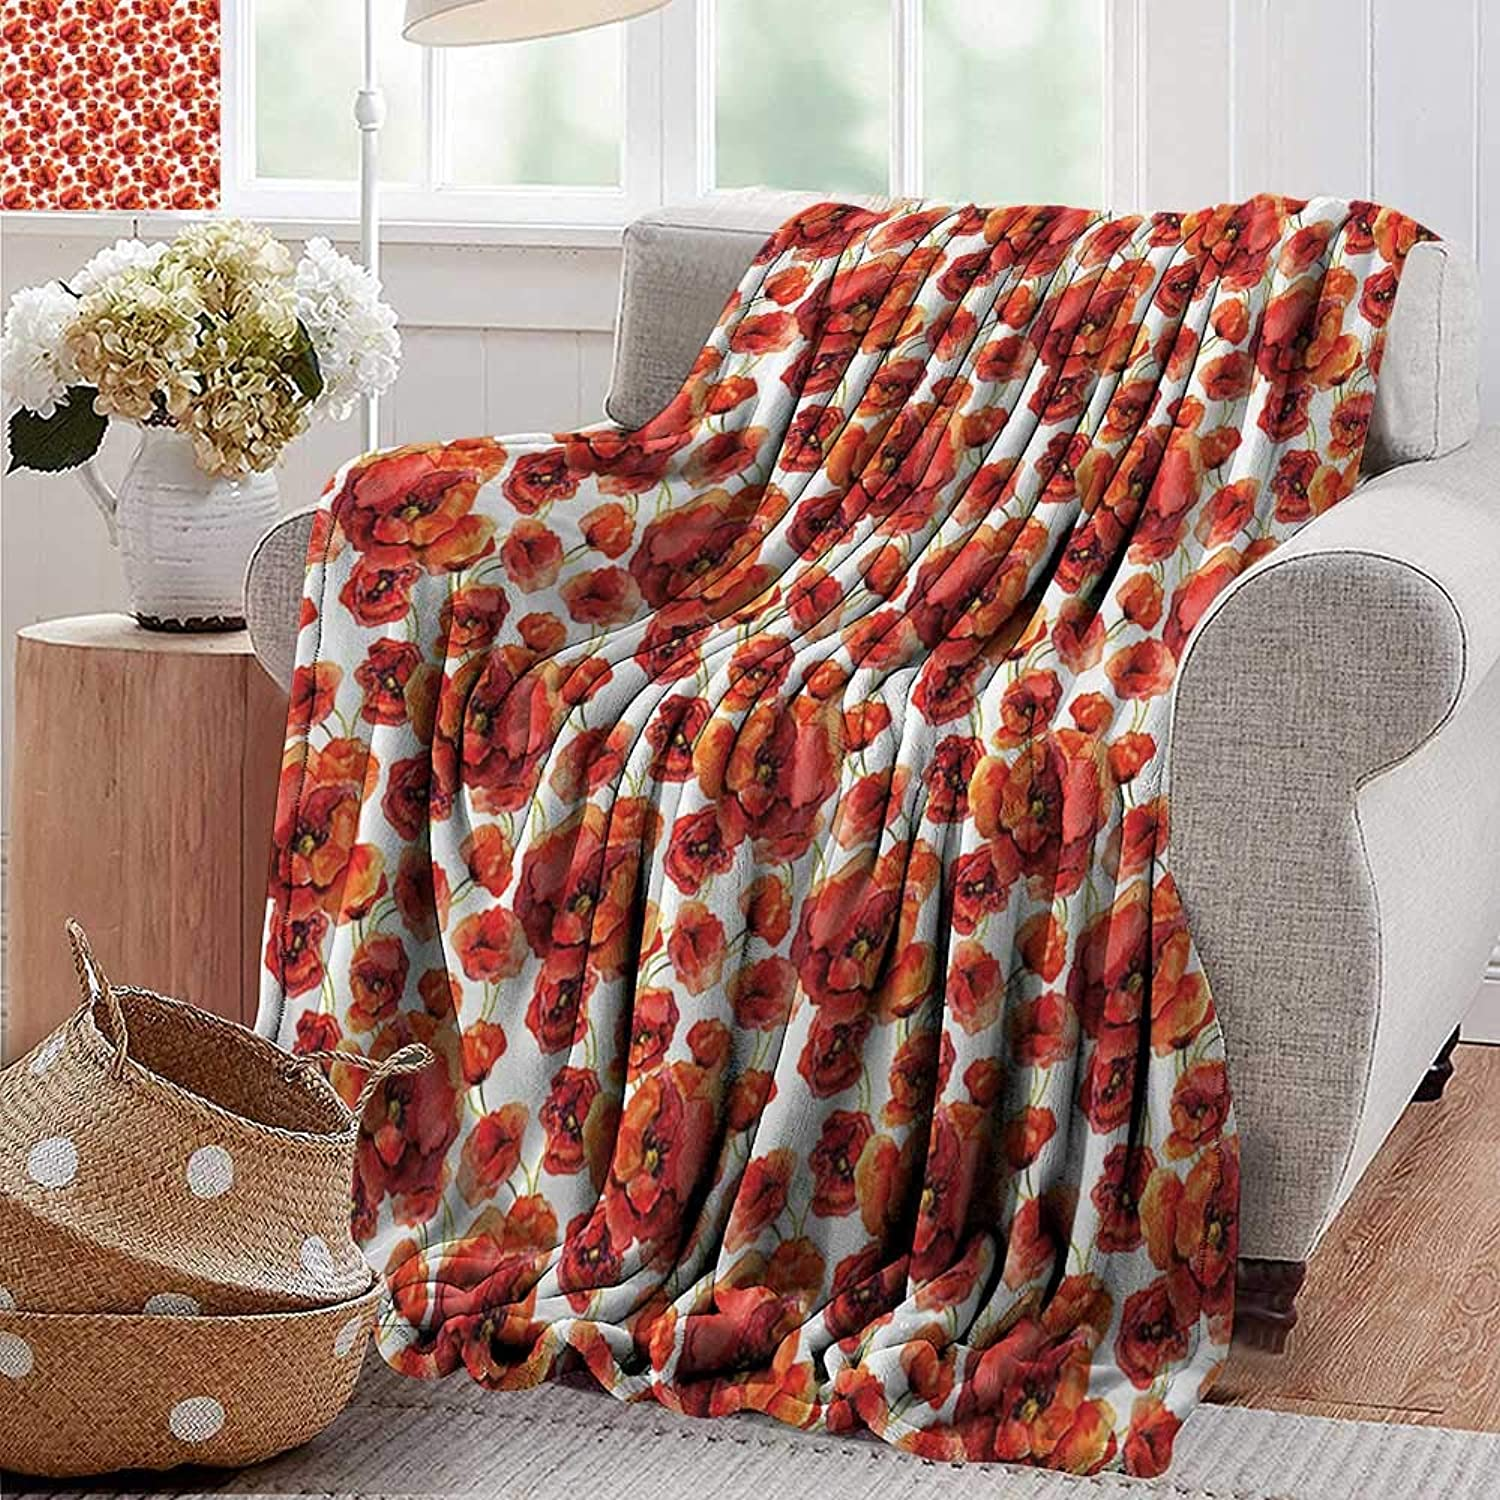 Weighted Blanket for Kids,Floral,Red Poppy Flowers Watercolor Paintbrush Style Effect Nature Idyllic Artsy Print,orange and White,Weighted Blanket for Adults Kids, Better Deeper Sleep 50 x70